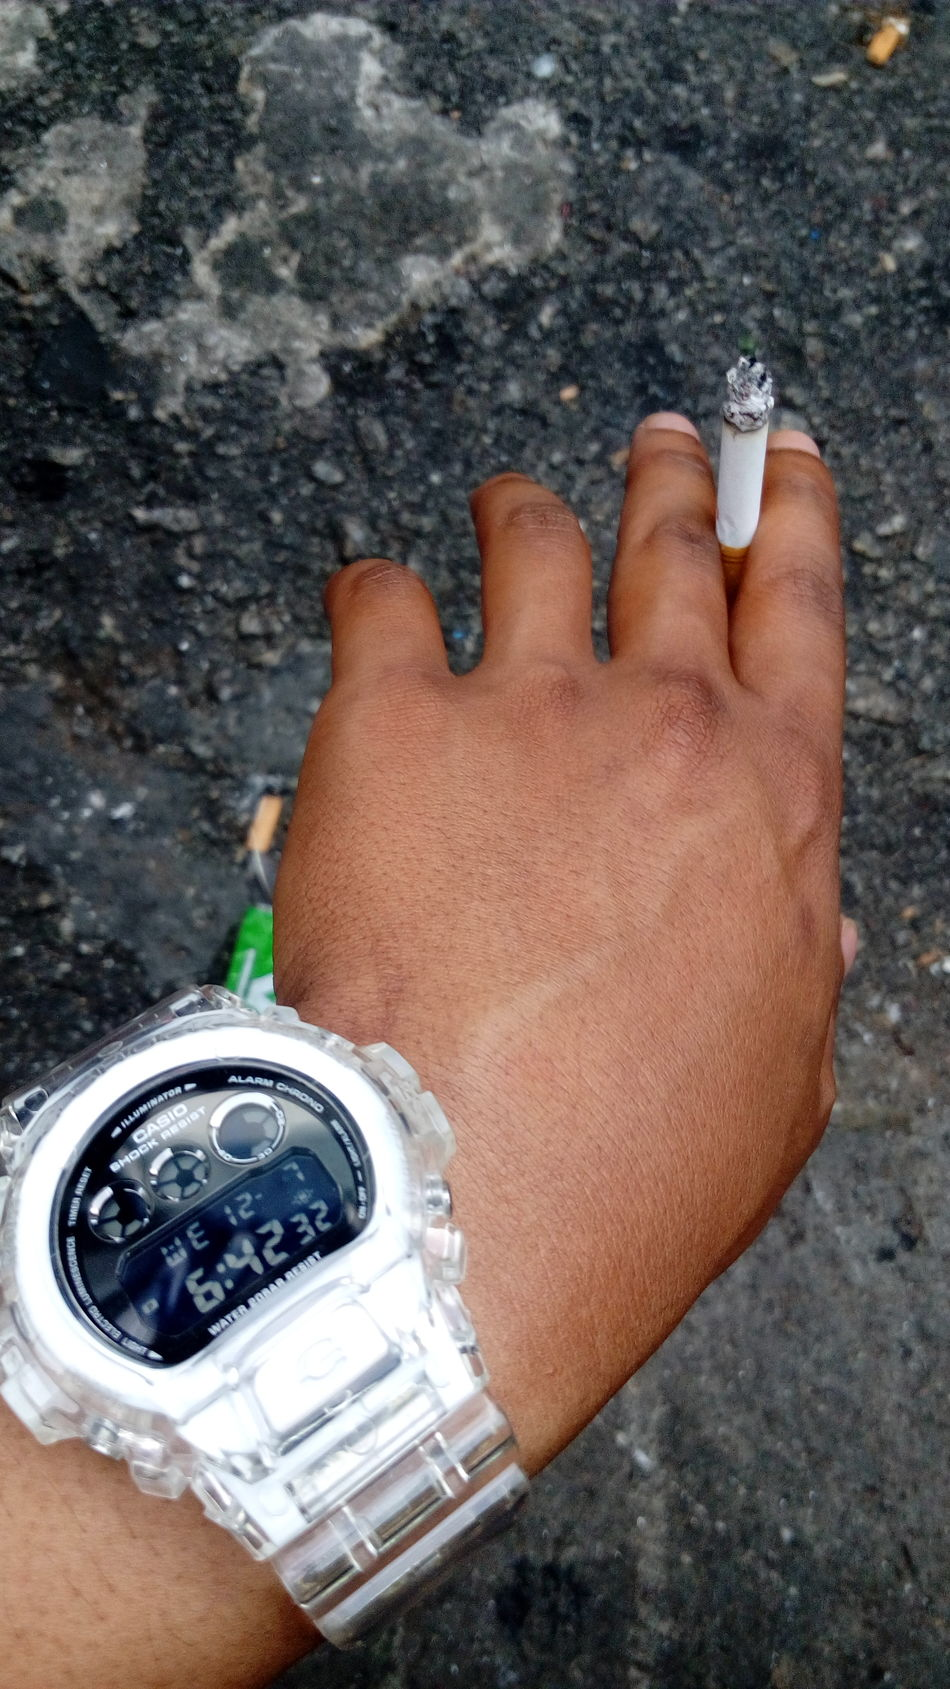 smoking kills..kills stress.. Ciggar Ciggarette For A Thousand Problems Gshock_Lover Casio G-shock Dw6900nb7 Eminem Icejelly